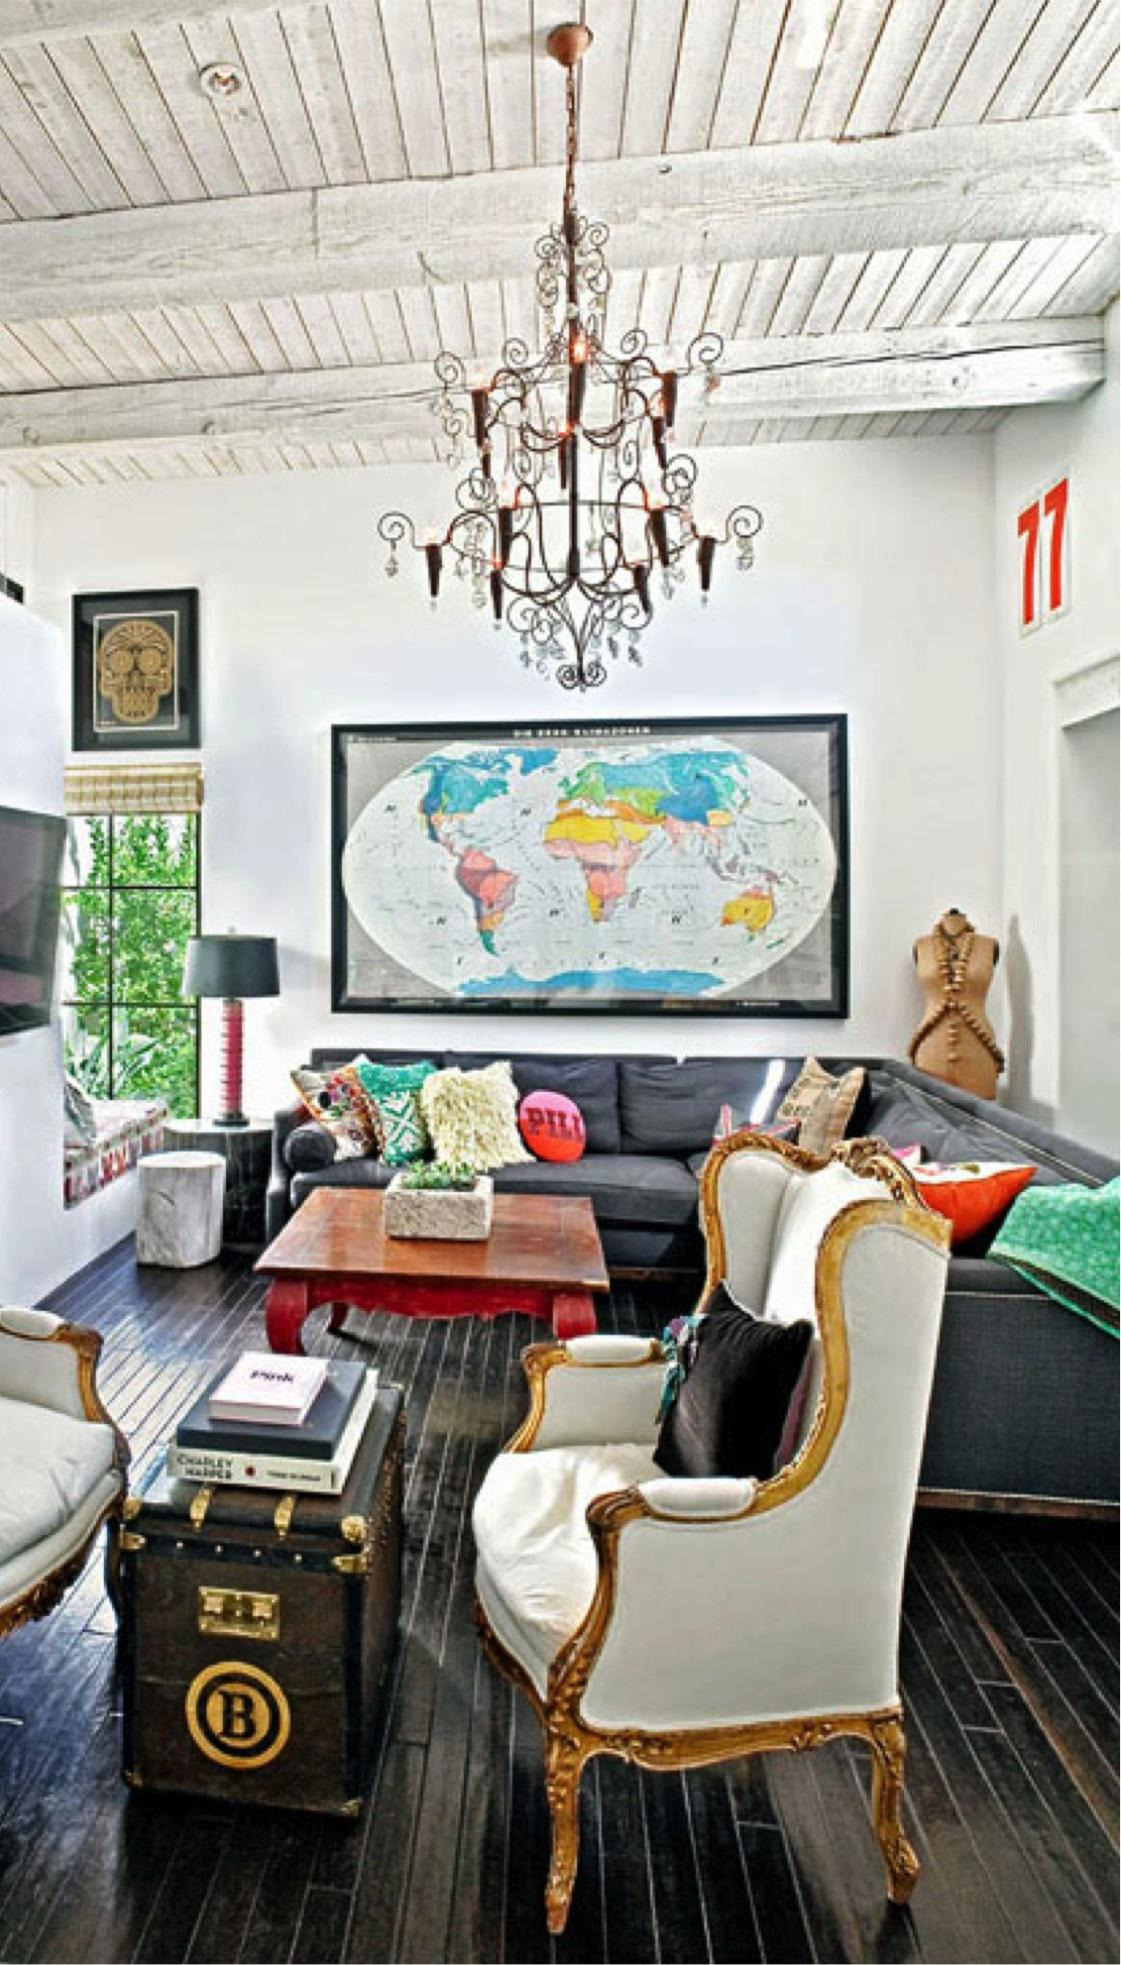 eclectic d cor blending antique and modern items